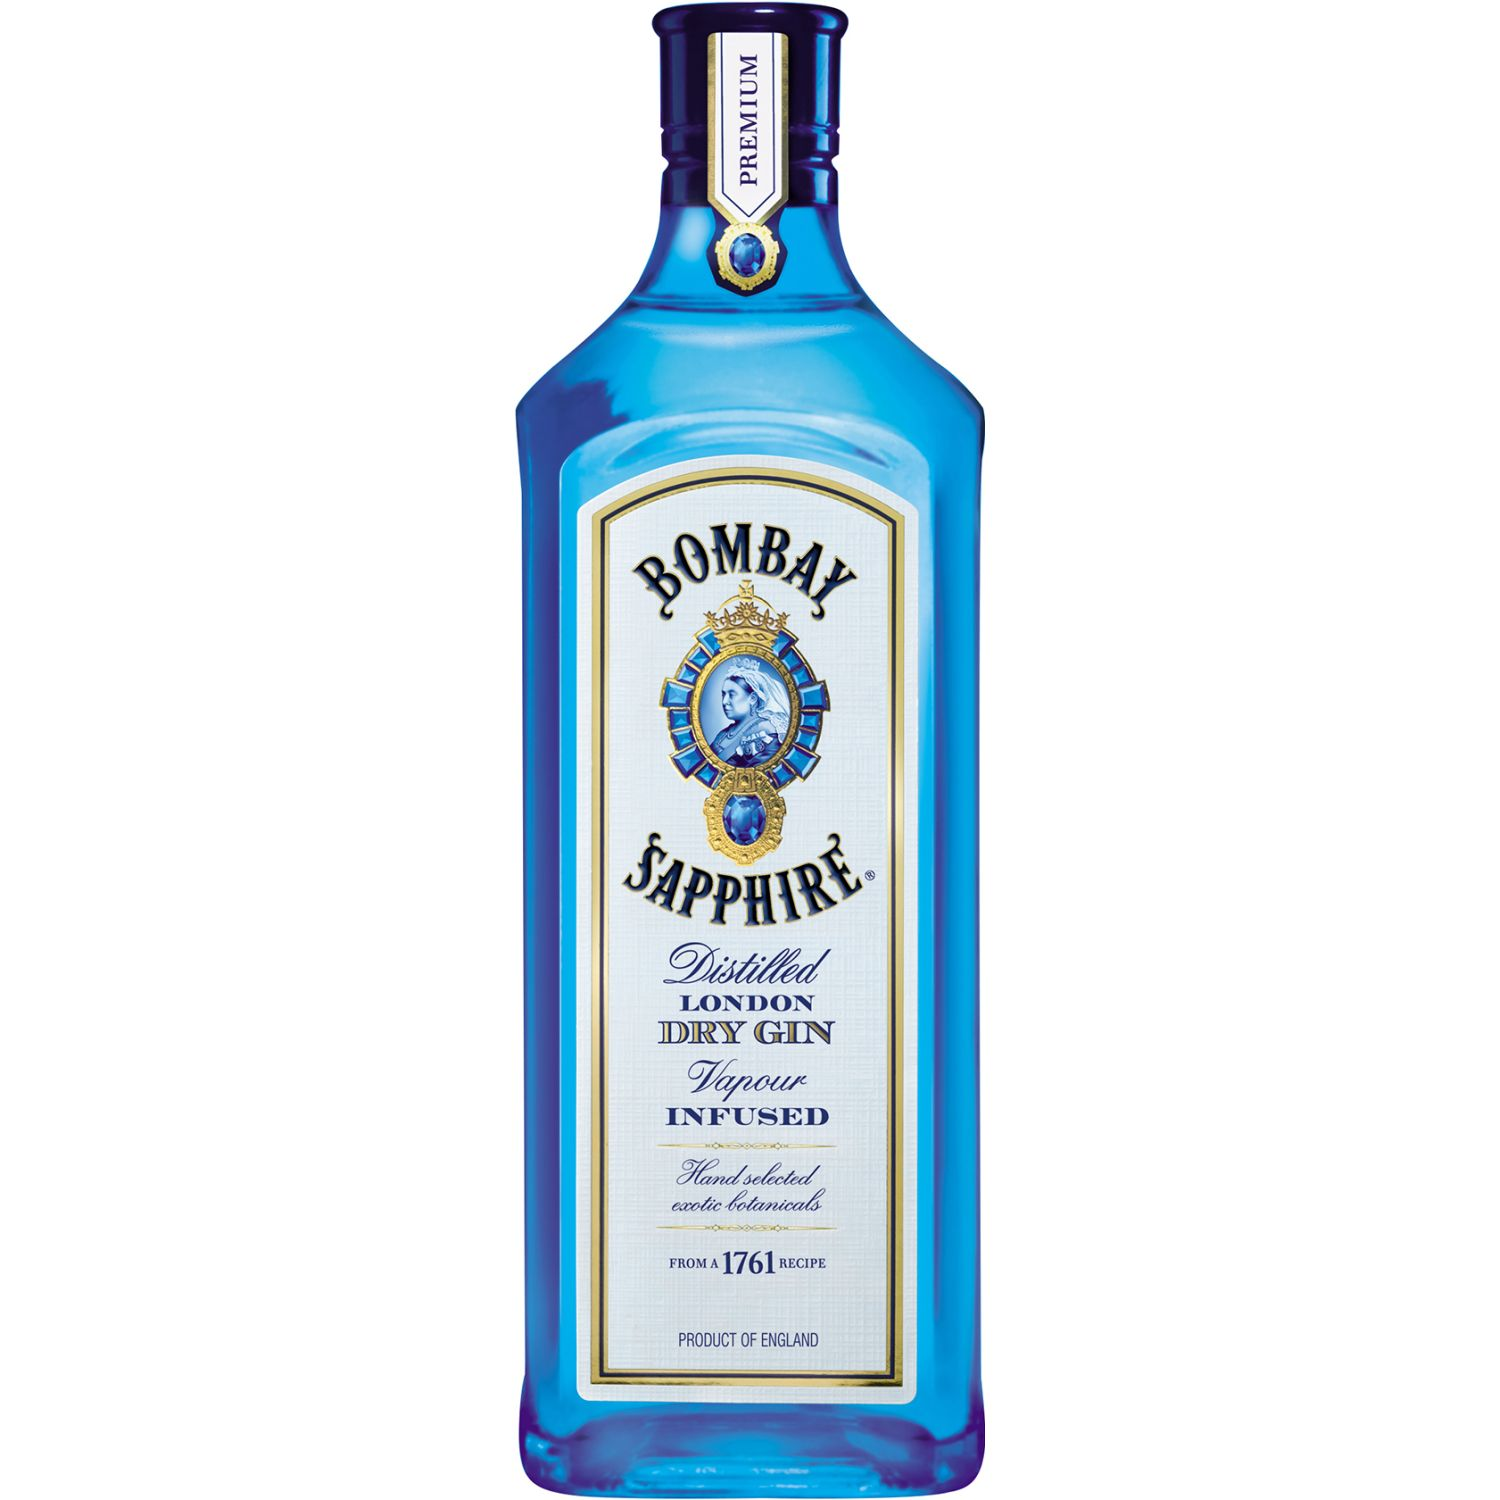 BOMBAY Gin Sapphire X 750ml SIN COLOR Gin